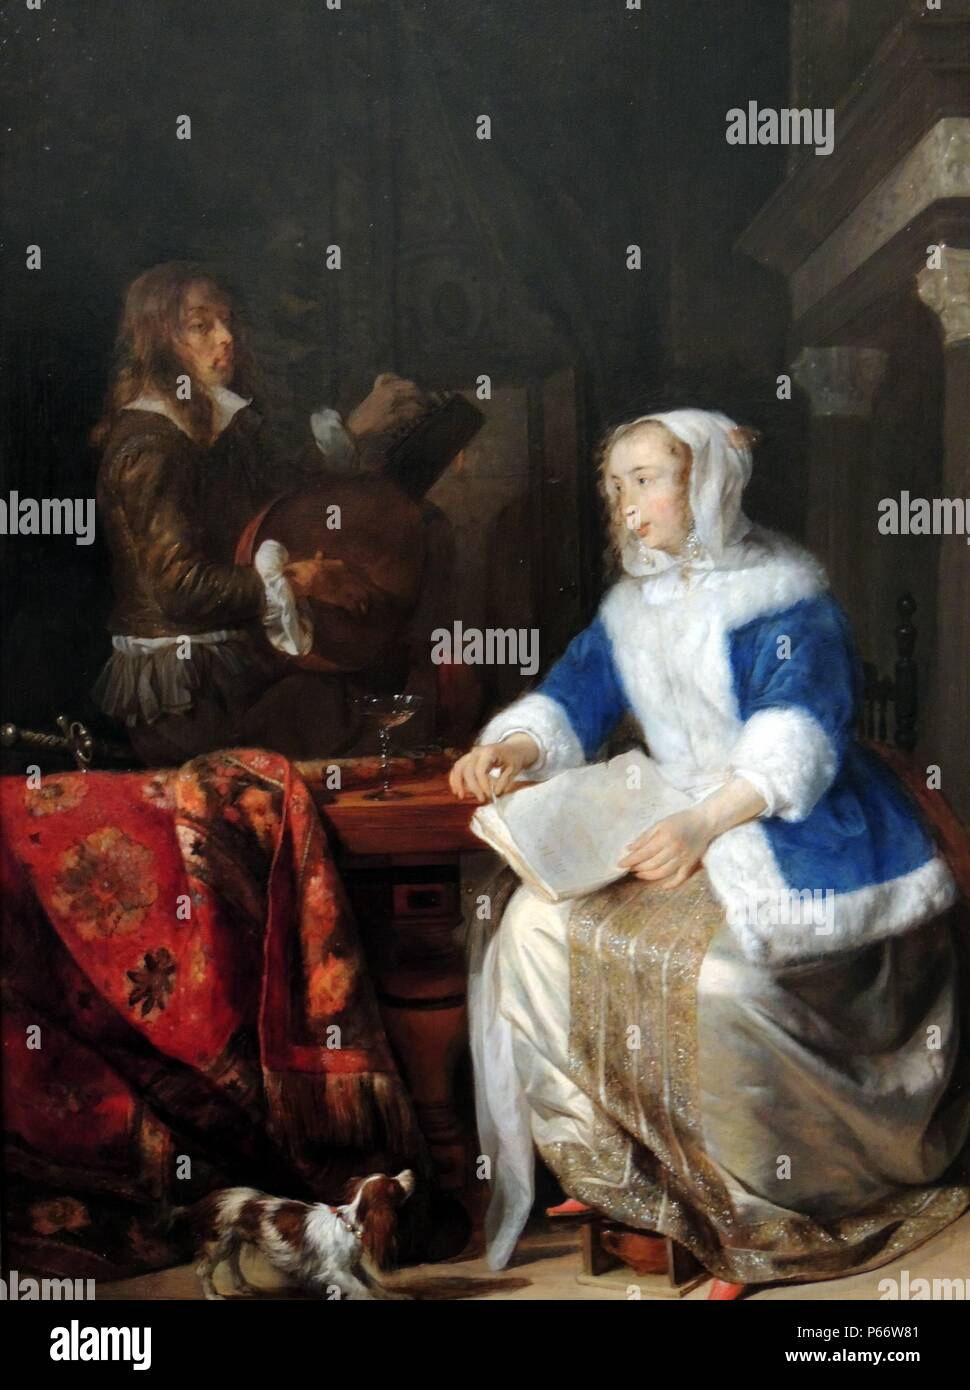 The Duet ('Le corset bleu') by Gabriel Metsu (1629 – 1669) Dated 1660 - 1667. Oil on panel. The painting symbolises amorous activity between the woman and the cavalier. Part of the art collection at Upton House in the English county of Warwickshire. Stock Photo